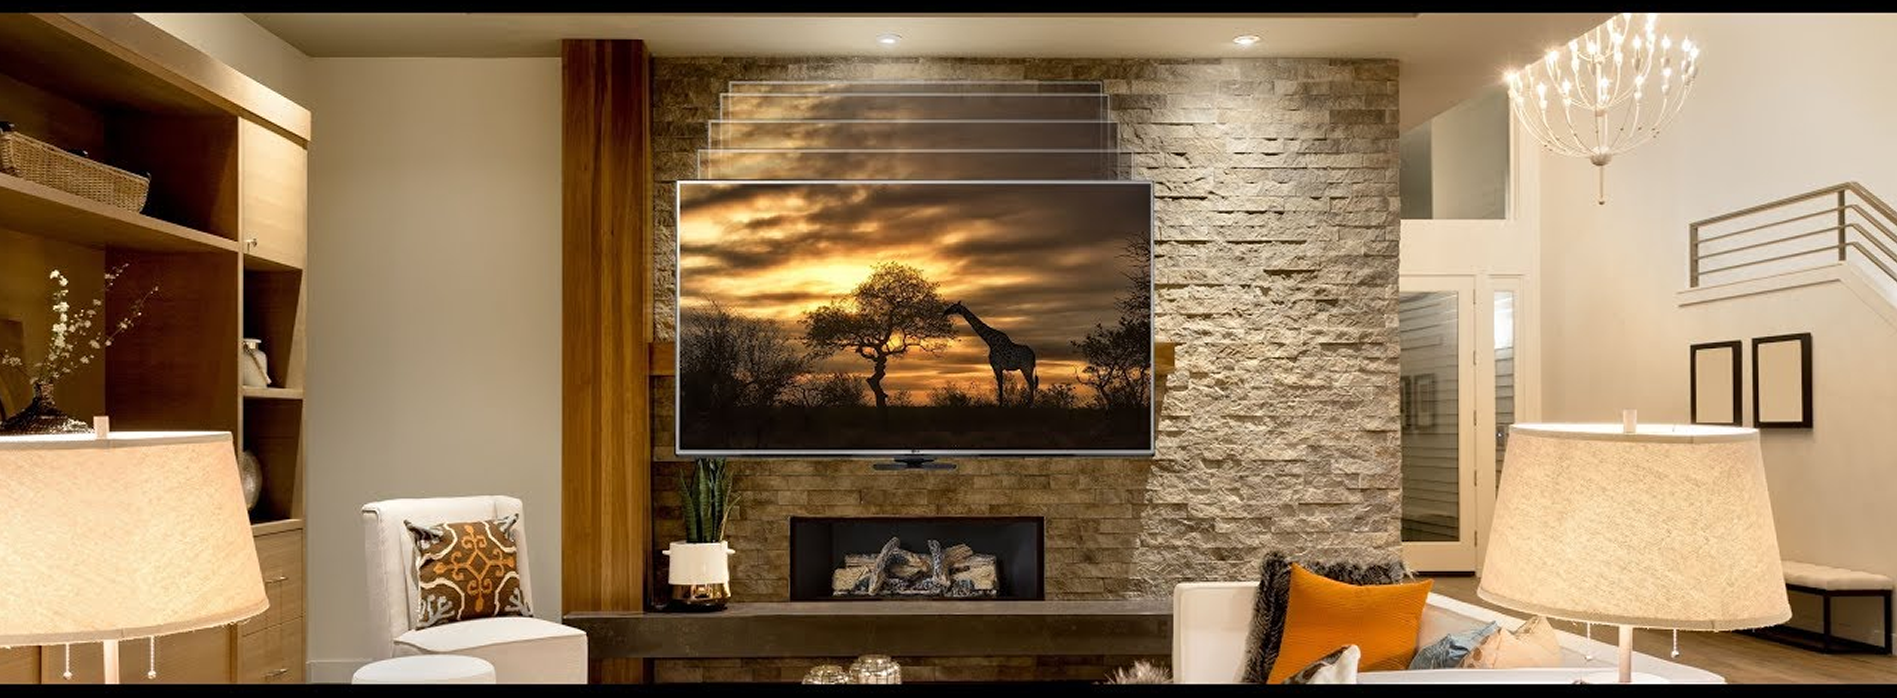 Fireplace TV Installation NJ